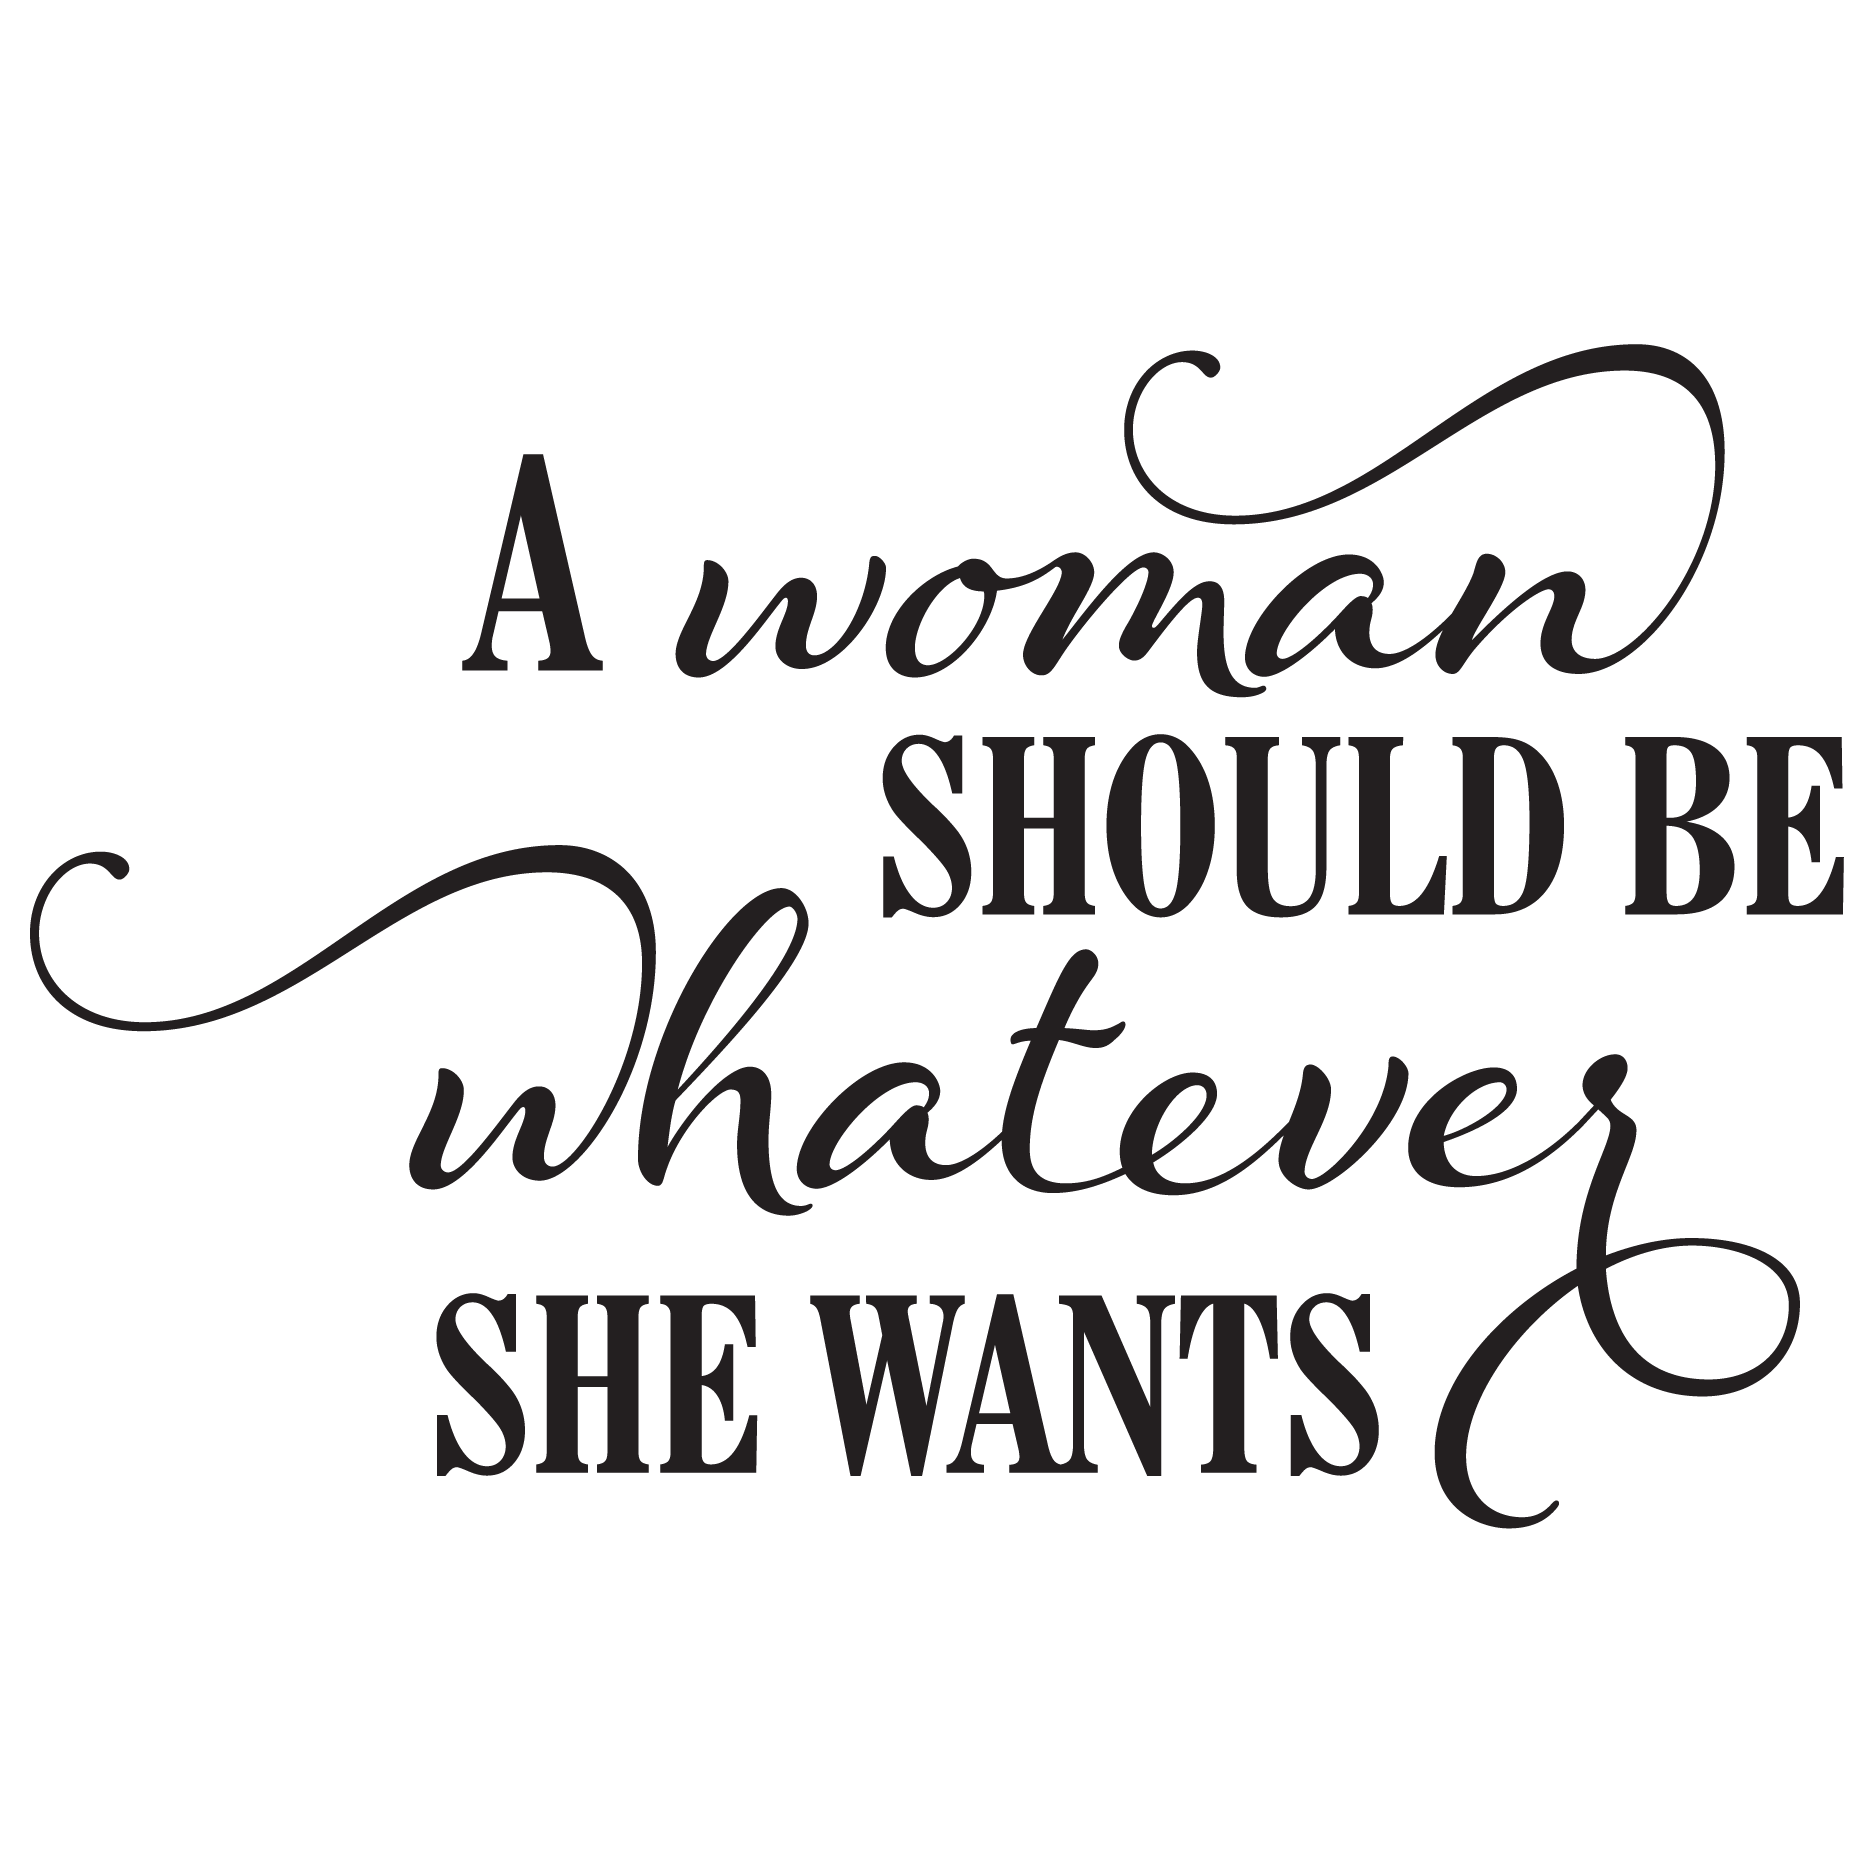 A Woman Should Be Whatever She Wants Wall Quotes™ Decal